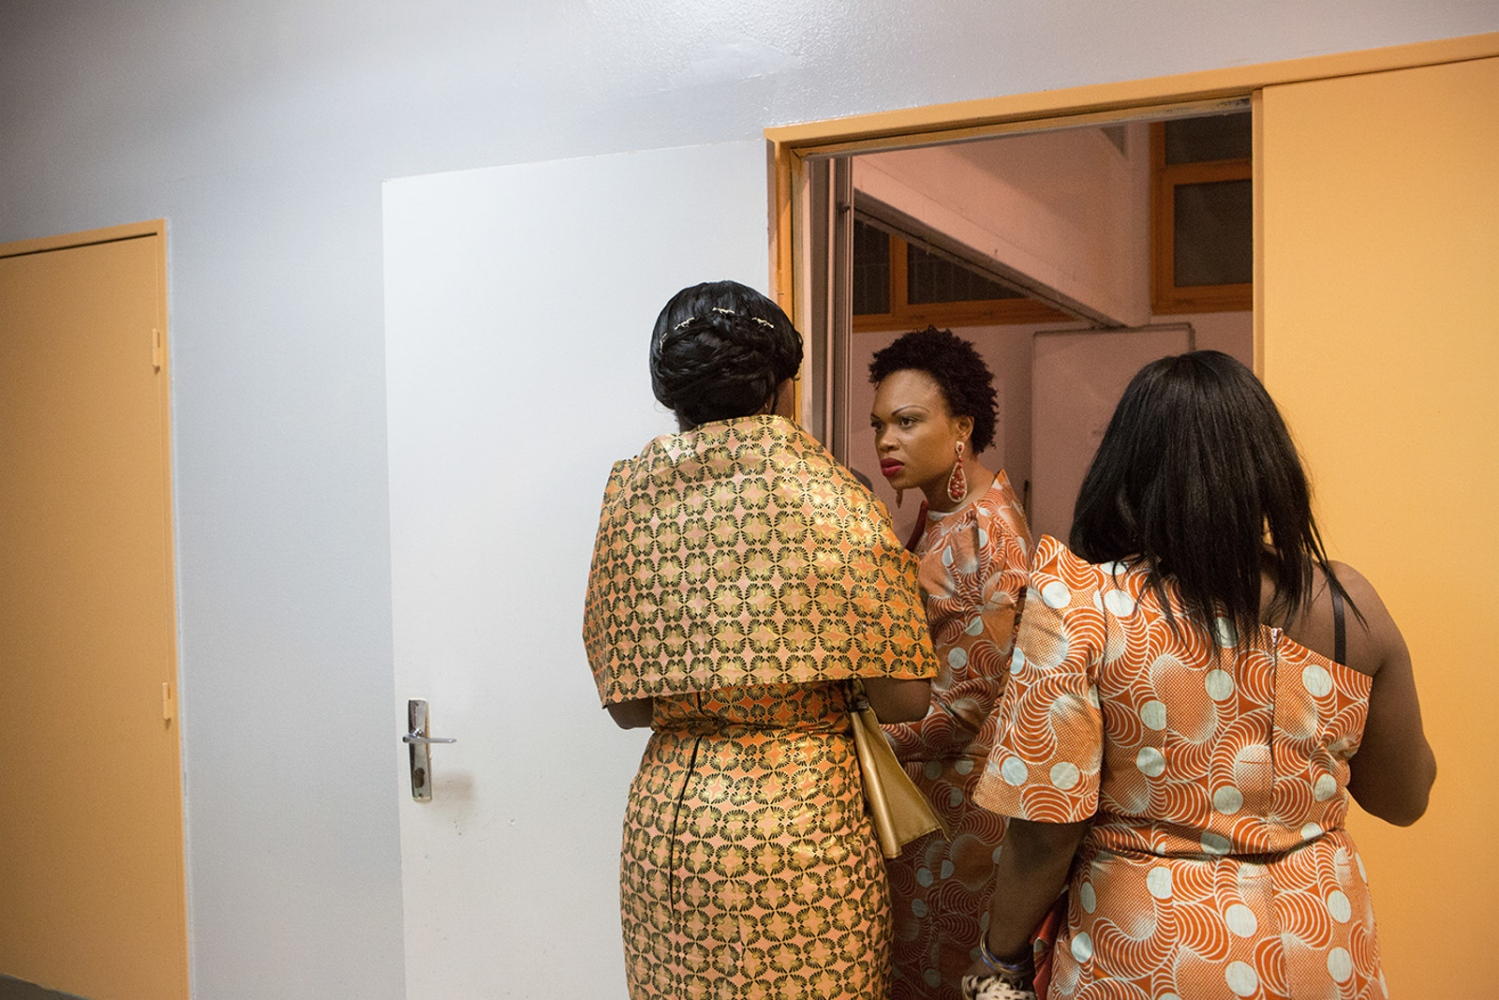 Ifonda Botuli, Carine Mwanza and Bianu, during Carine traditional wedding and dowry. The young afrofrench women of France keep doing the traditional African Wedding and dressing themselfs in a traditional way.